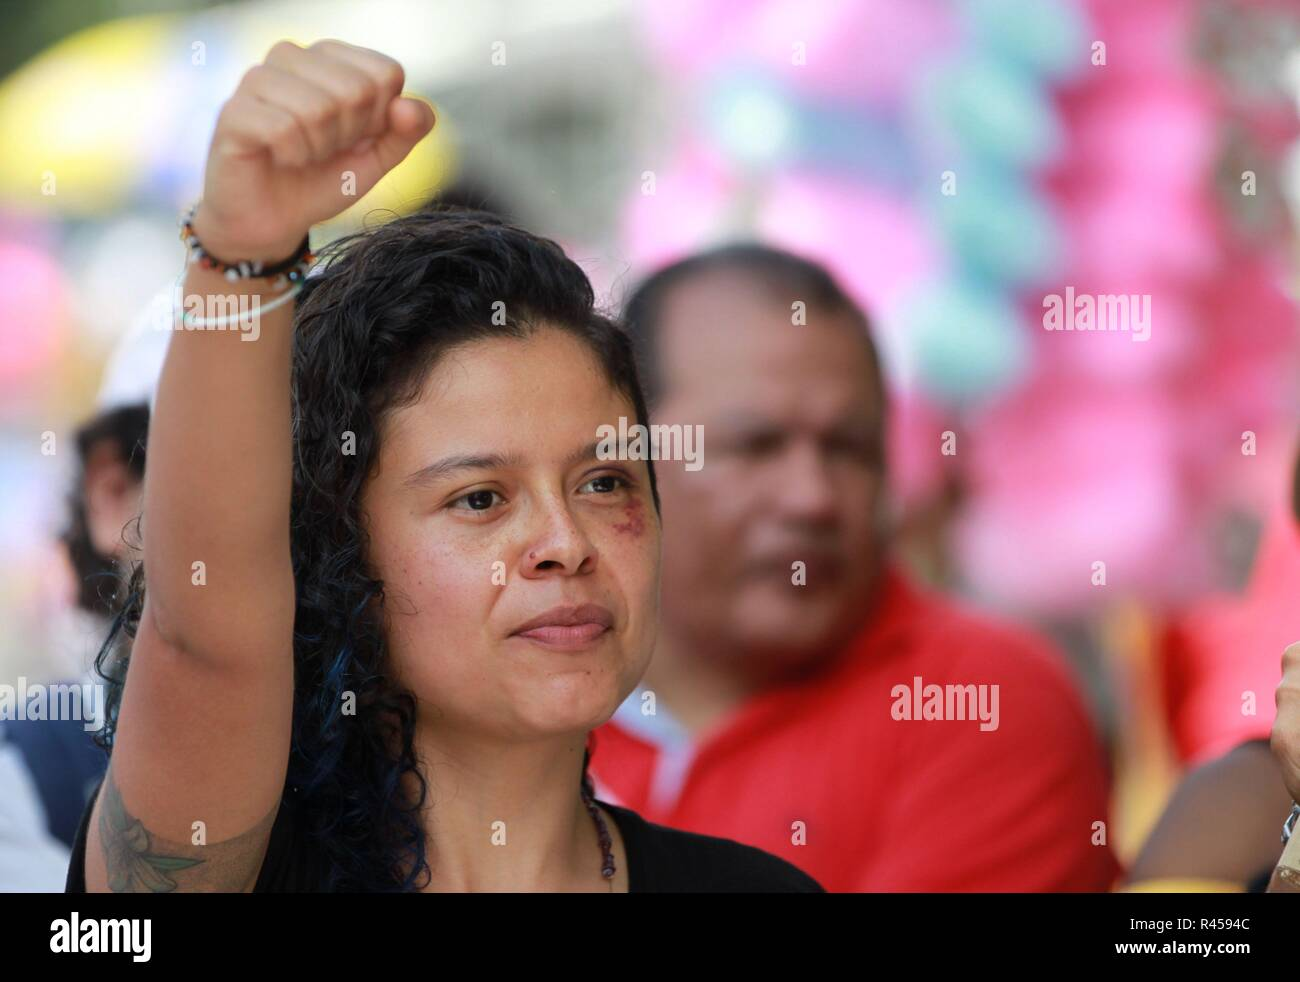 Cali, Colombia. 25th Nov, 2018. Dozens of people march against machist violence, in the framework of the International Day of Nonviolence against Women, in Cali, Colombia, 25 November 2018. The Ombudsman's Office warned today that 42% of the aggressors of women in Colombia are 'couples, ex-partners or people known to the victim', according to data collected by the entity after guiding and dealing with cases in different parts of the country. Credit: Ernesto Guzman Jr/EFE/Alamy Live News - Stock Image